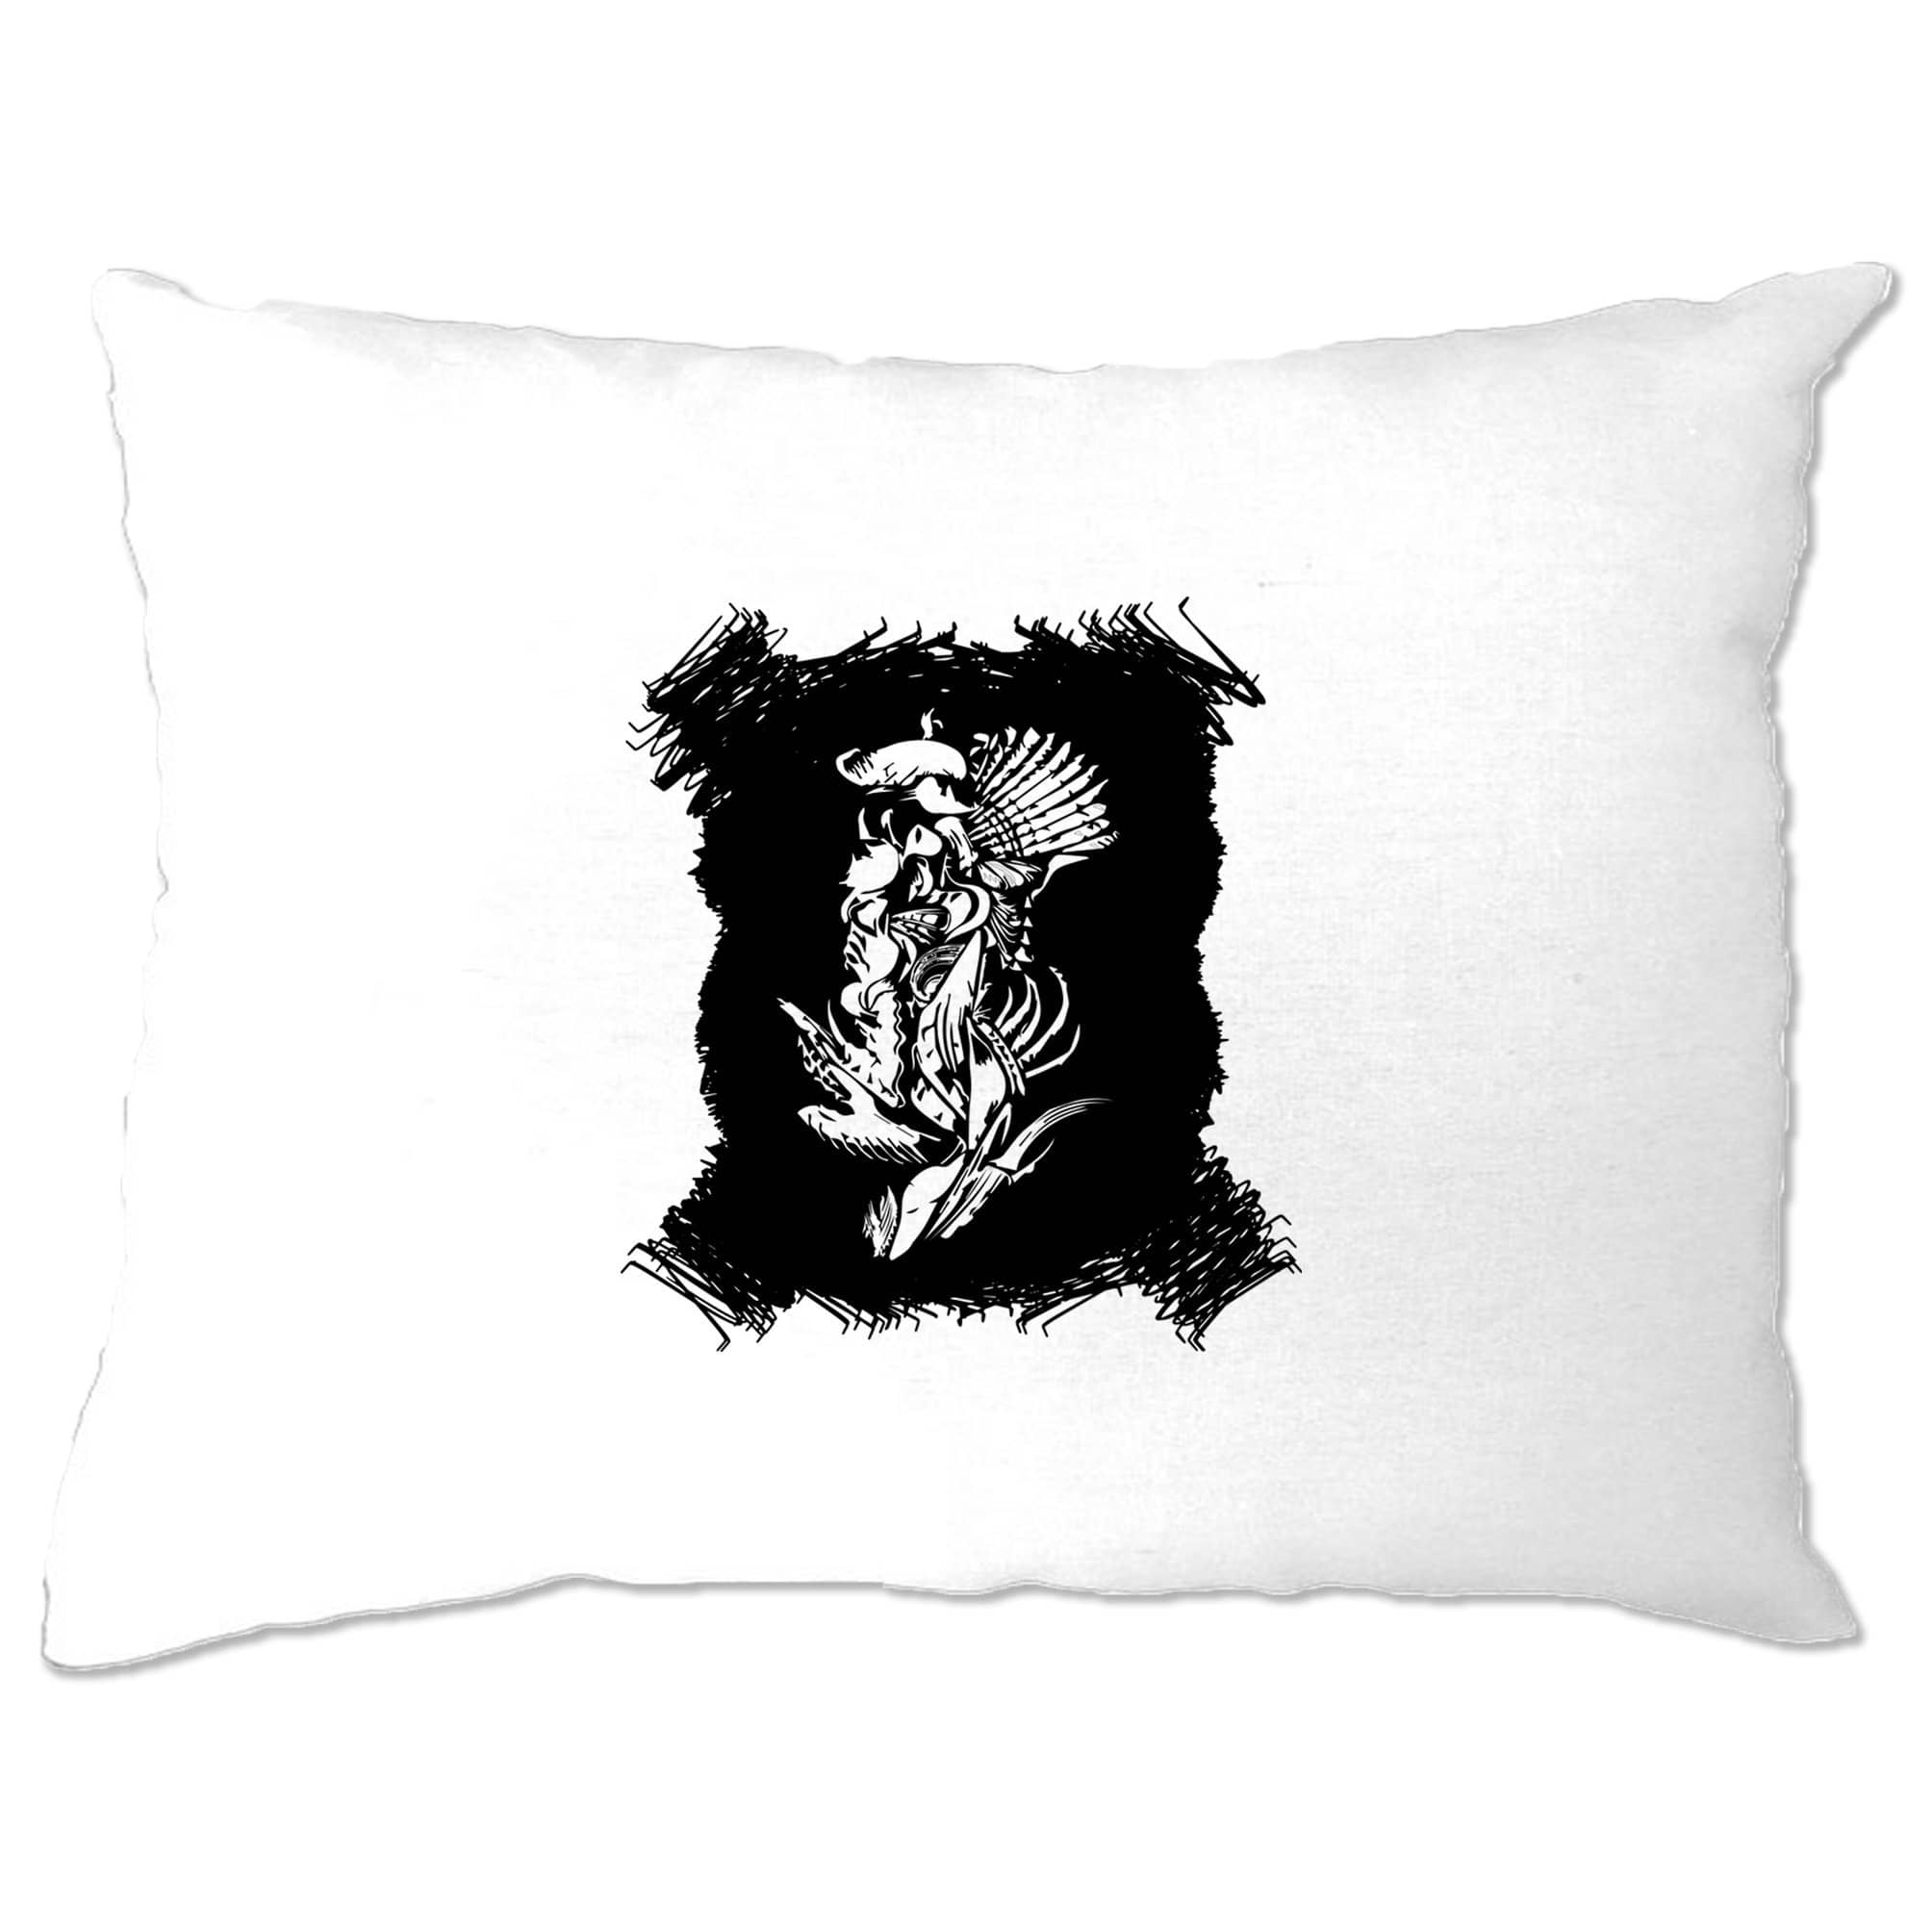 Abstract Tribal Art Pillow Case Native American Indian